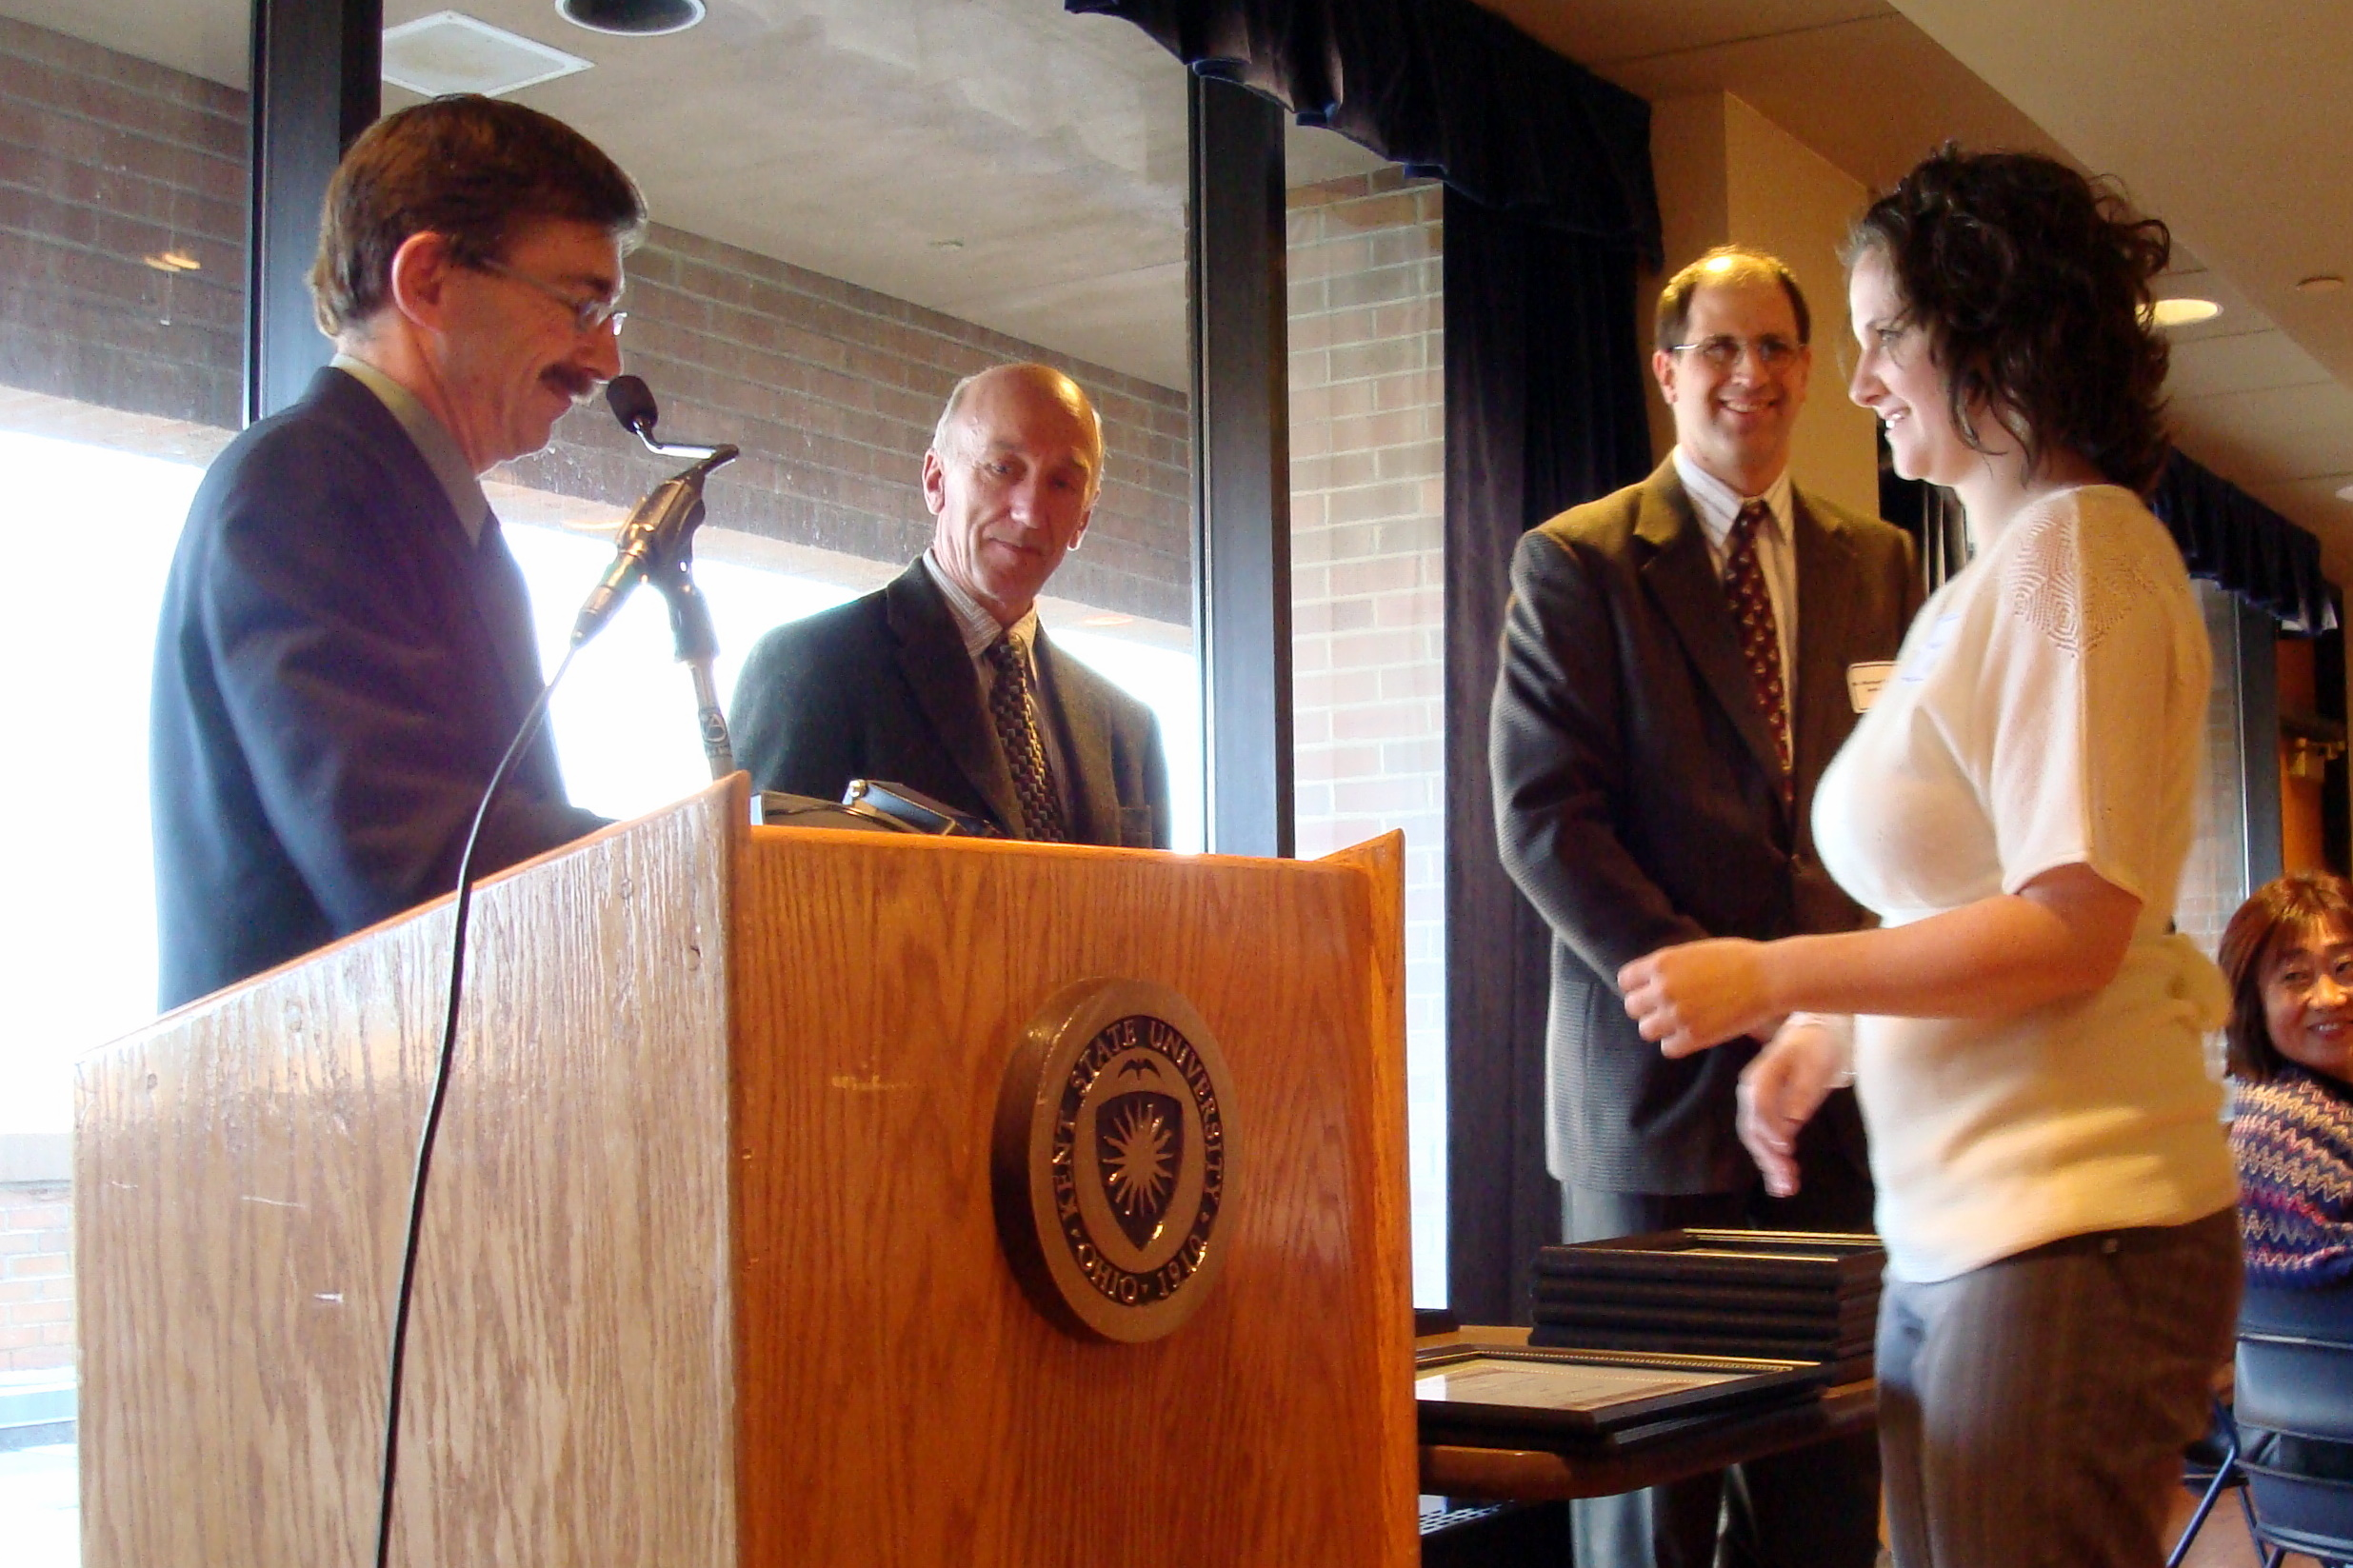 An undergraduate student receives an award during the Honors Day Celebration.